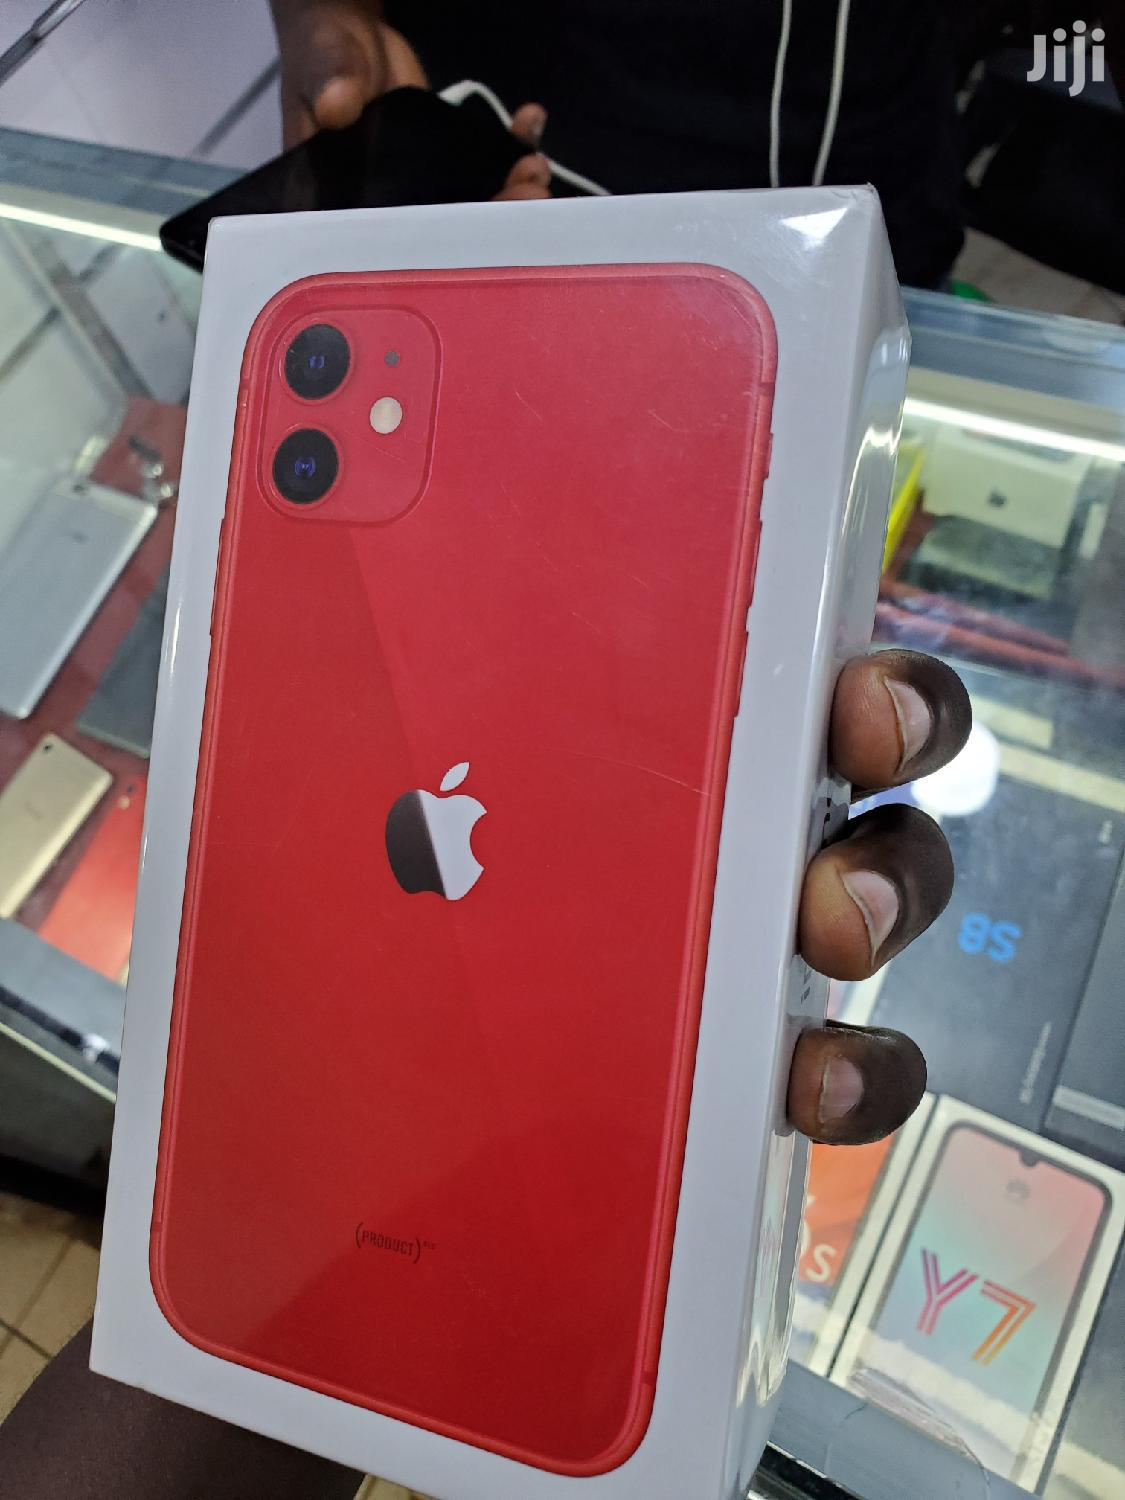 New Apple iPhone 11 Pro Max 256 GB Red | Mobile Phones for sale in Kampala, Central Region, Uganda